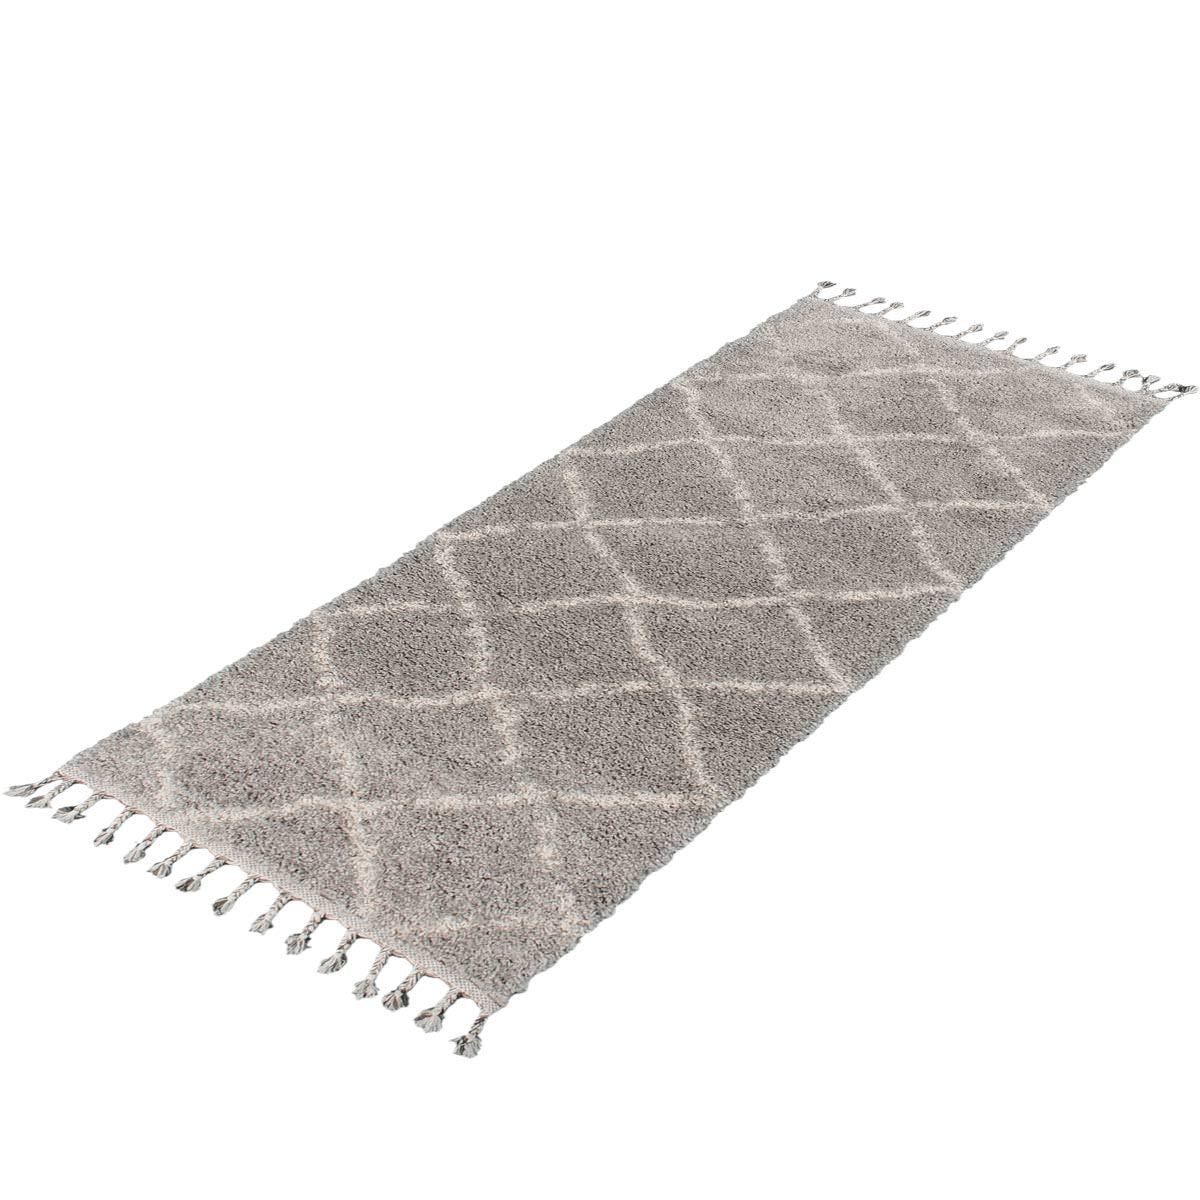 Shaggy Marrakech Rug 07 Grey/Cream Runner 6